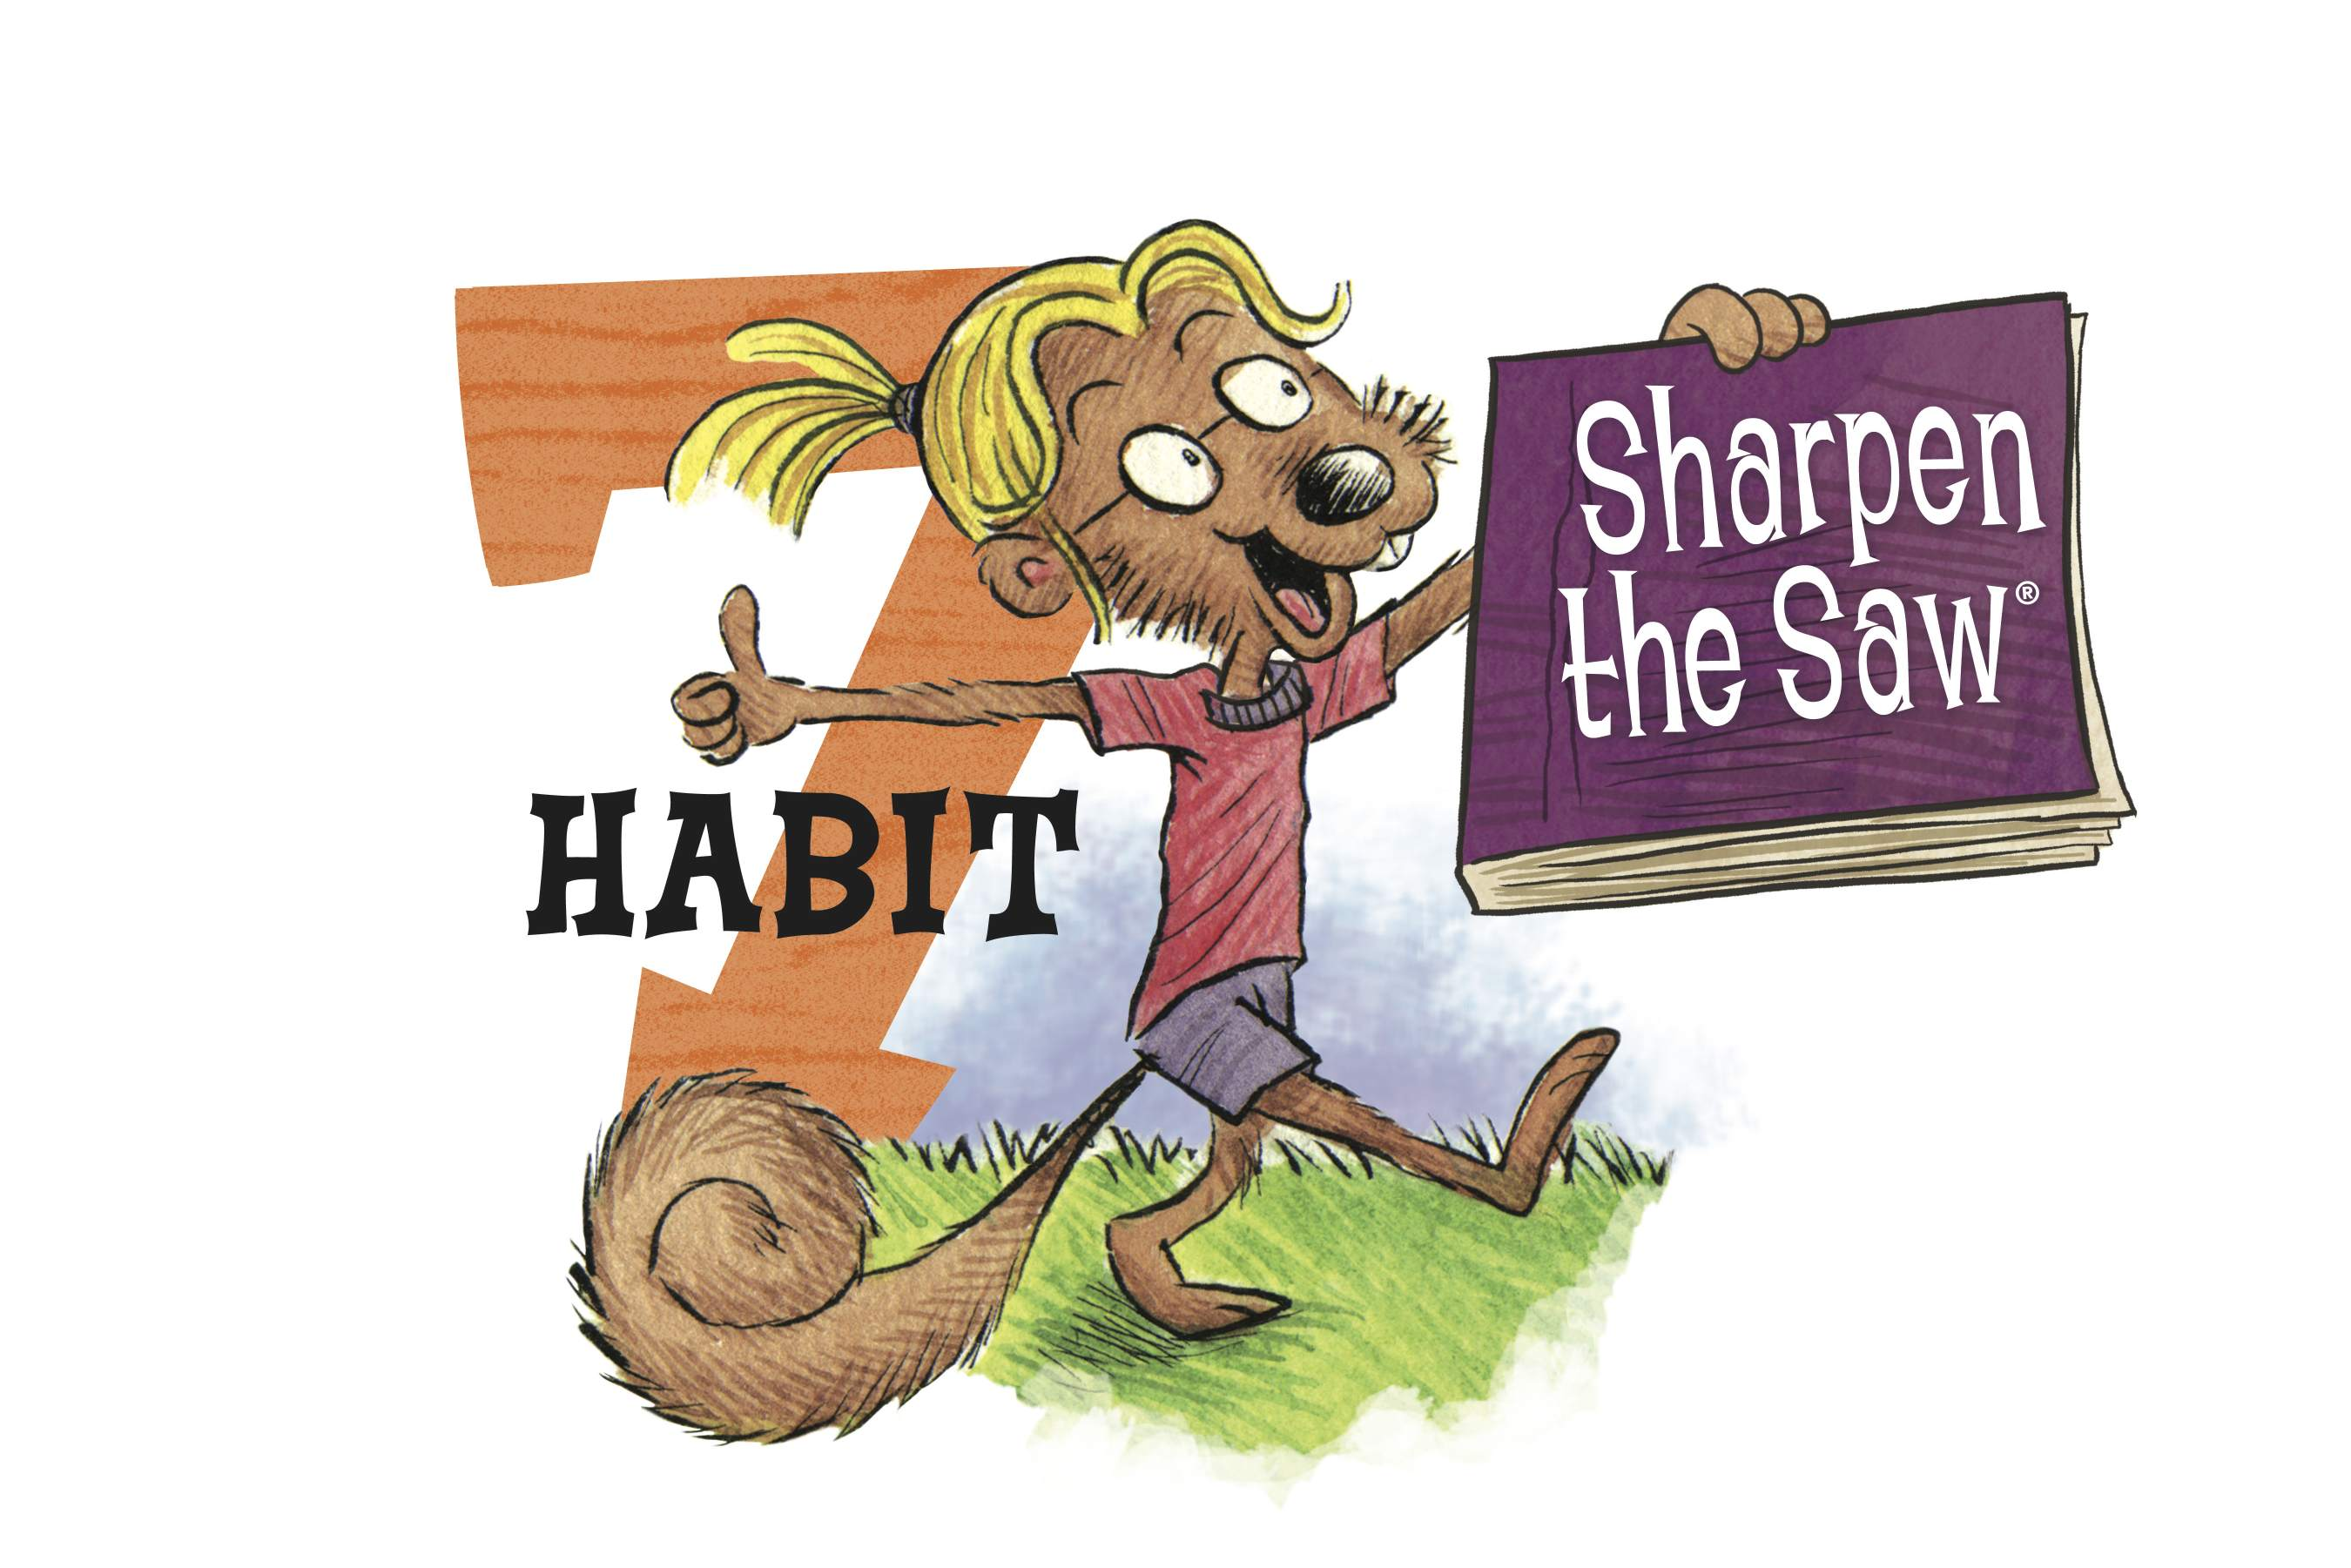 Preparatory academy the seven. 7 clipart habit